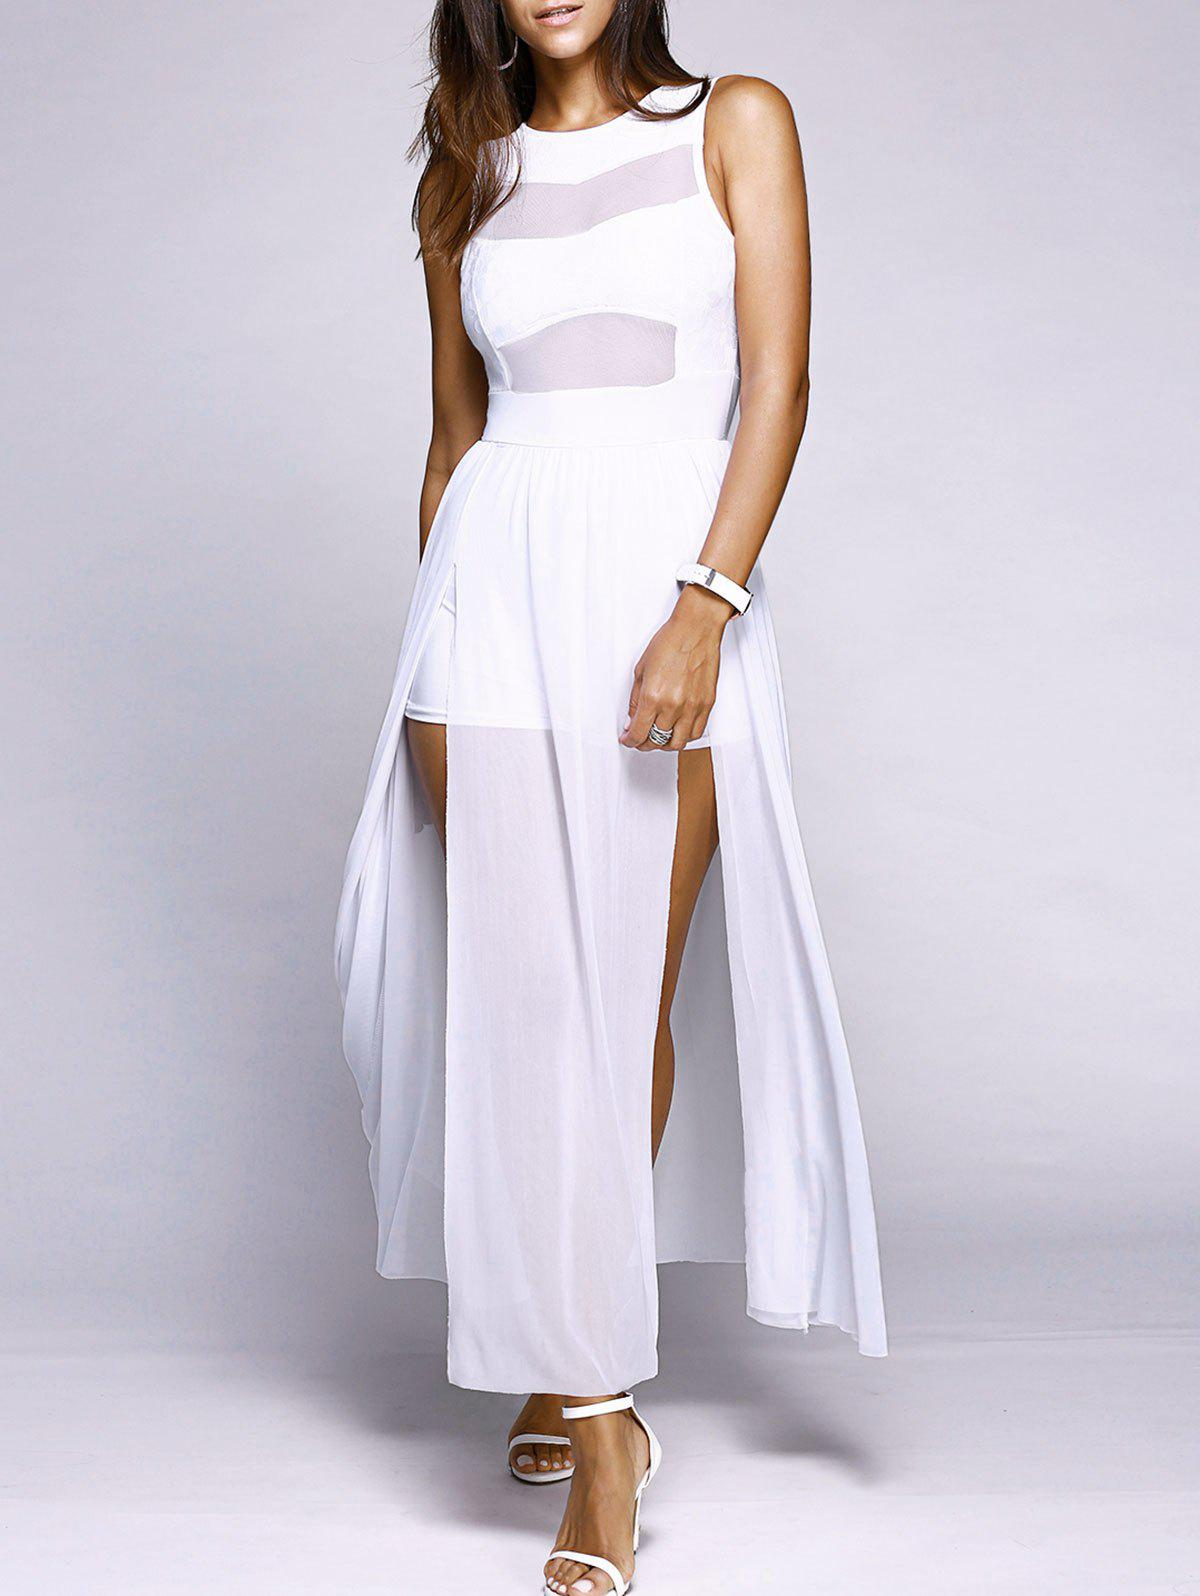 Alluring Sleeveless Round Neck Voile Spliced High Slit Women's Dress - WHITE L